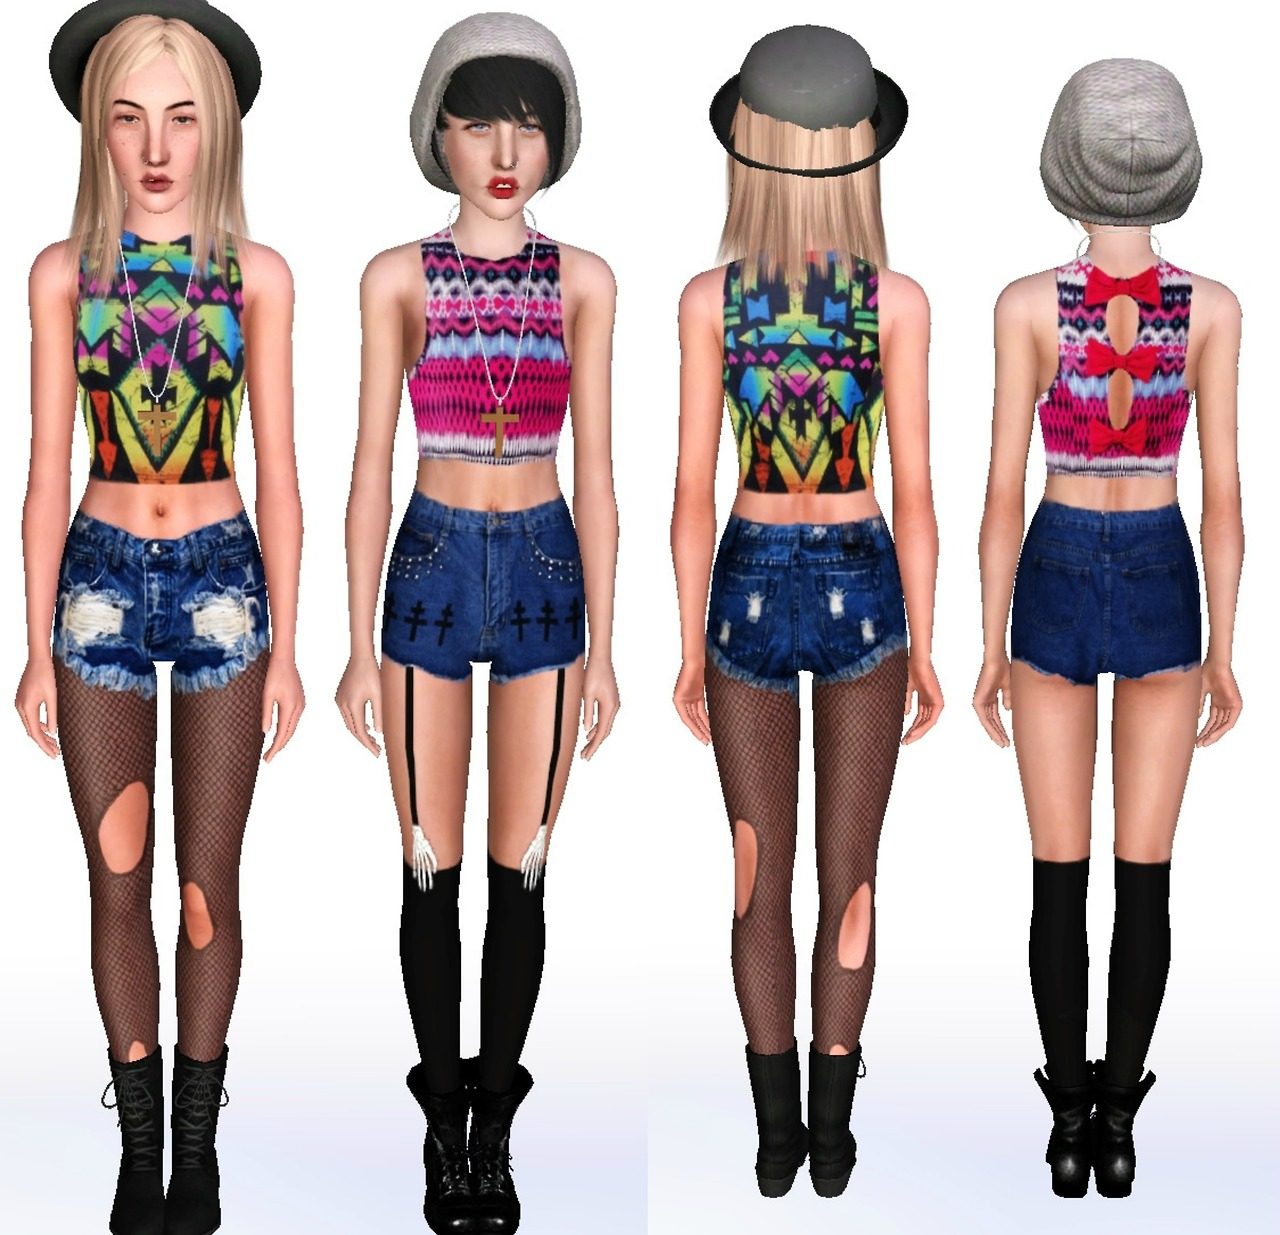 Sims 2 Clothing 11